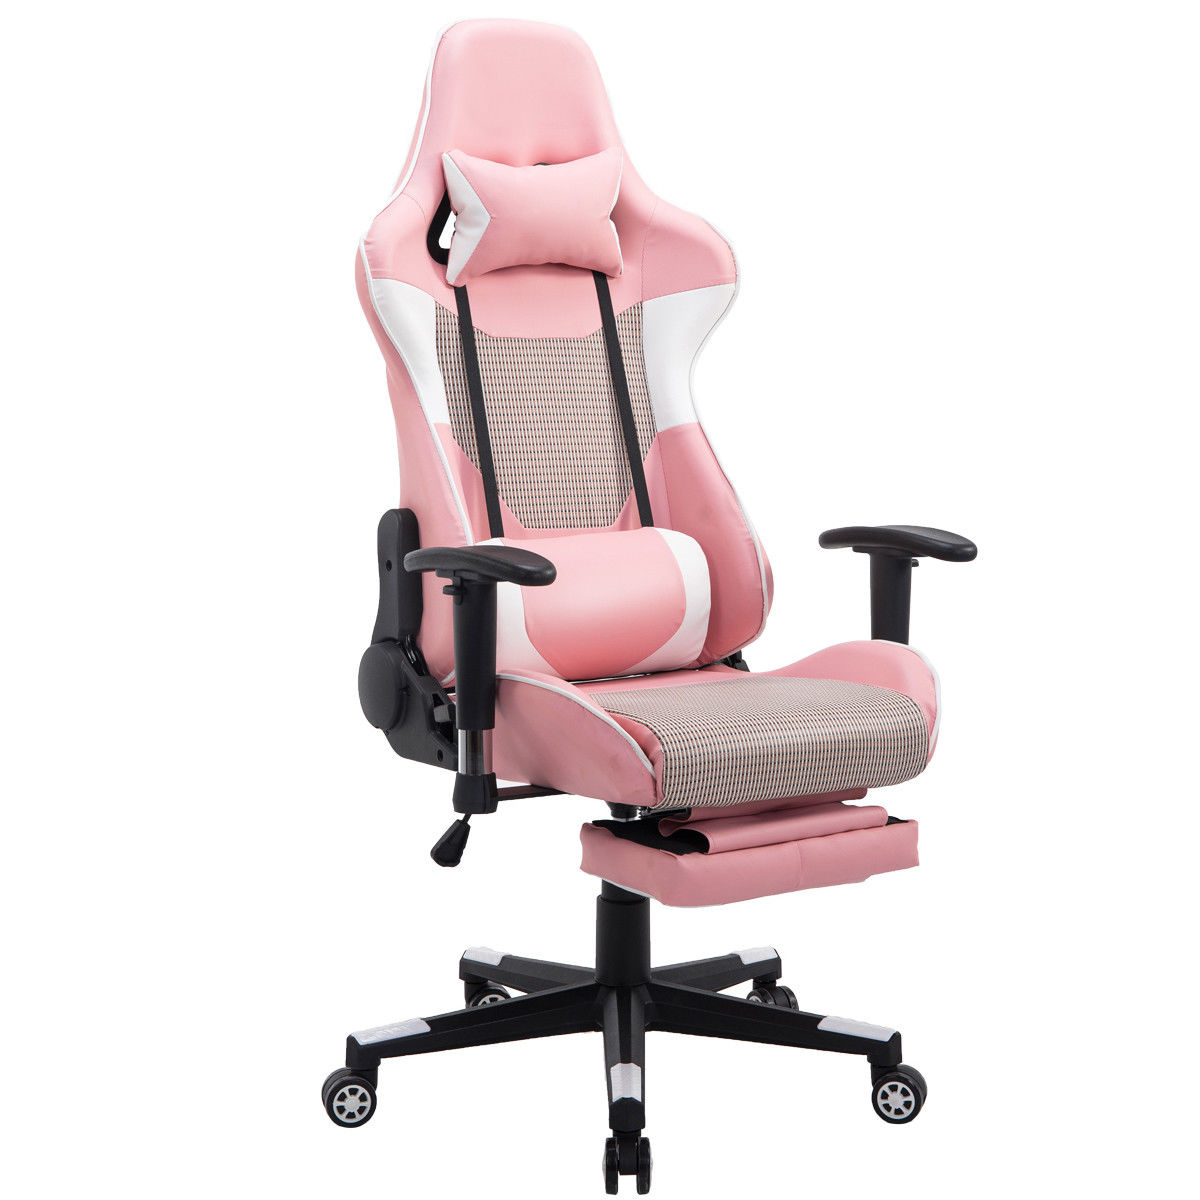 Giantex Modern Reclining Gaming Chair High Back Racing